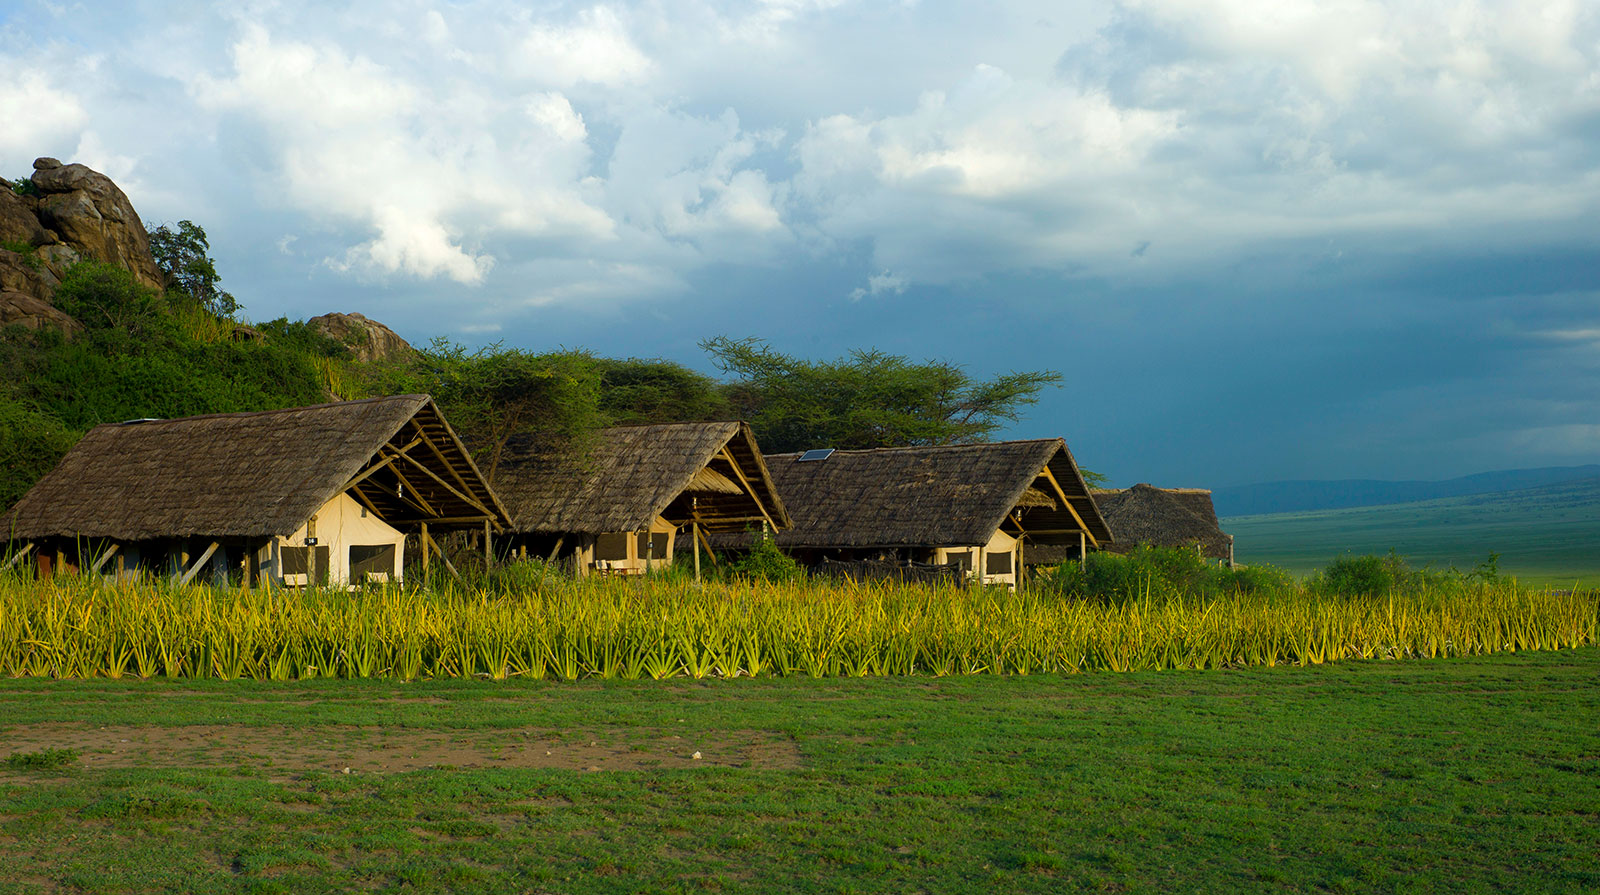 Olduvai Camp - Comfort and authenticity